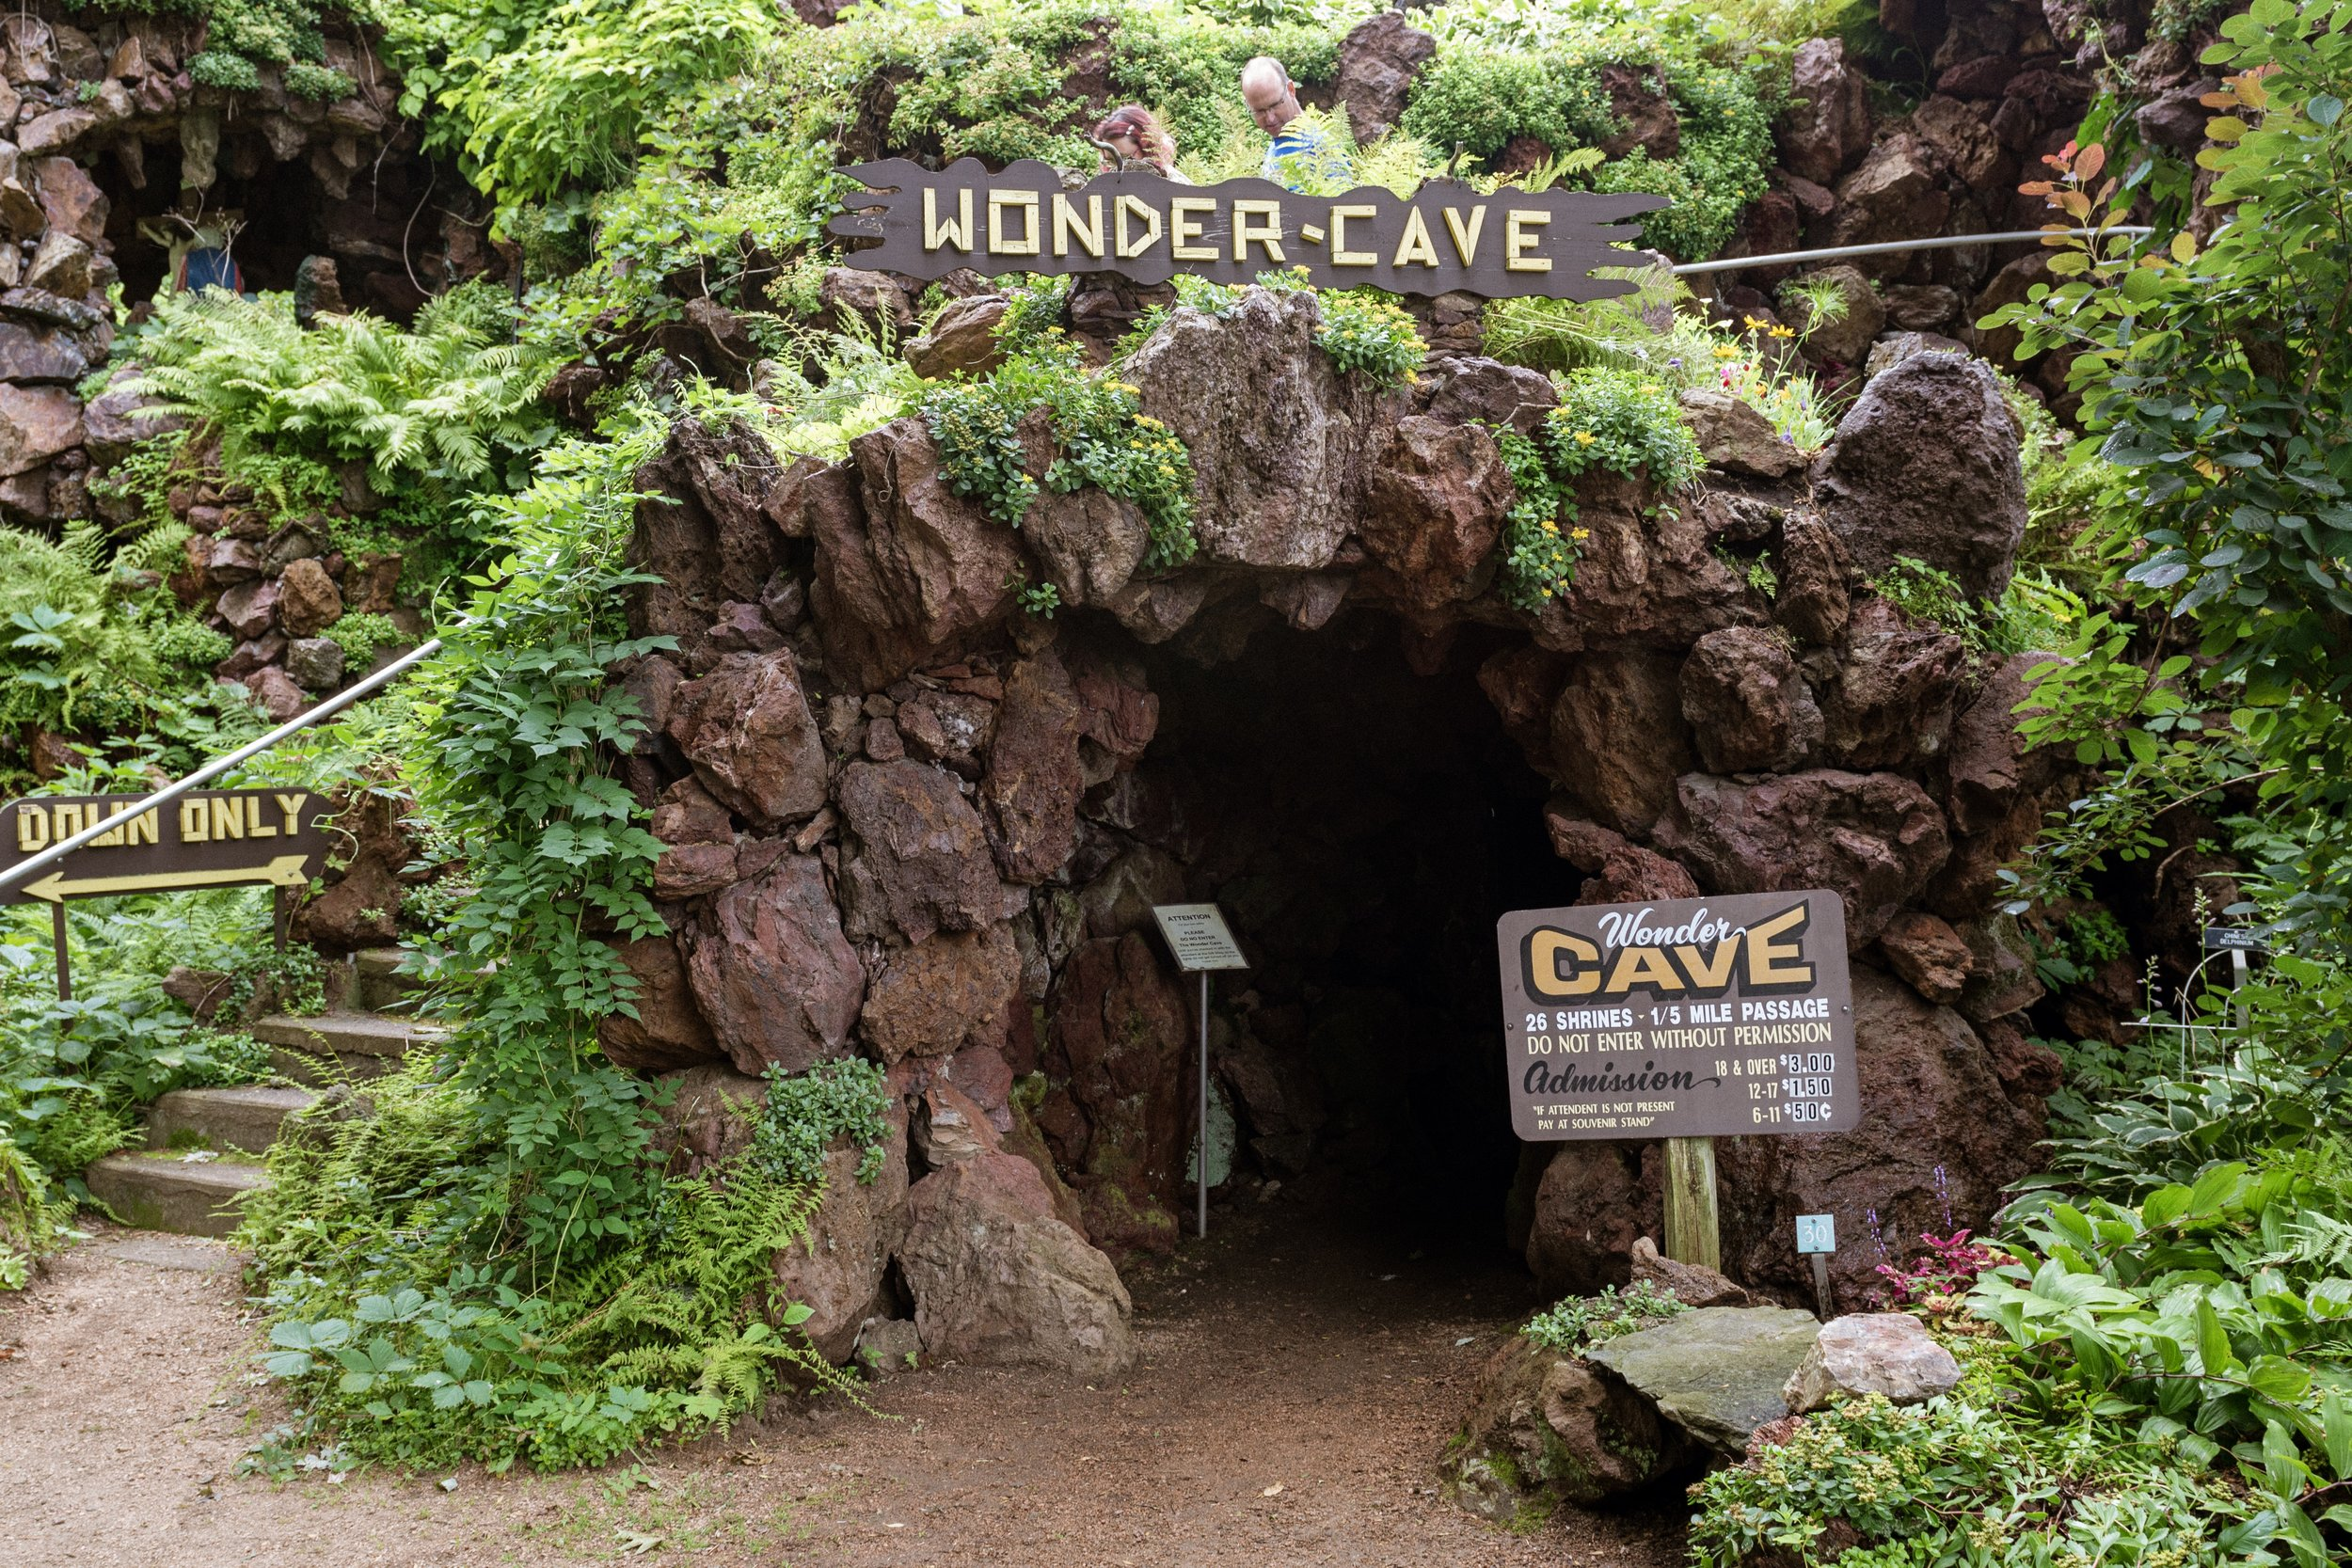 Over a fifth of a mile long, the Wonder Cave was completely built by hand.